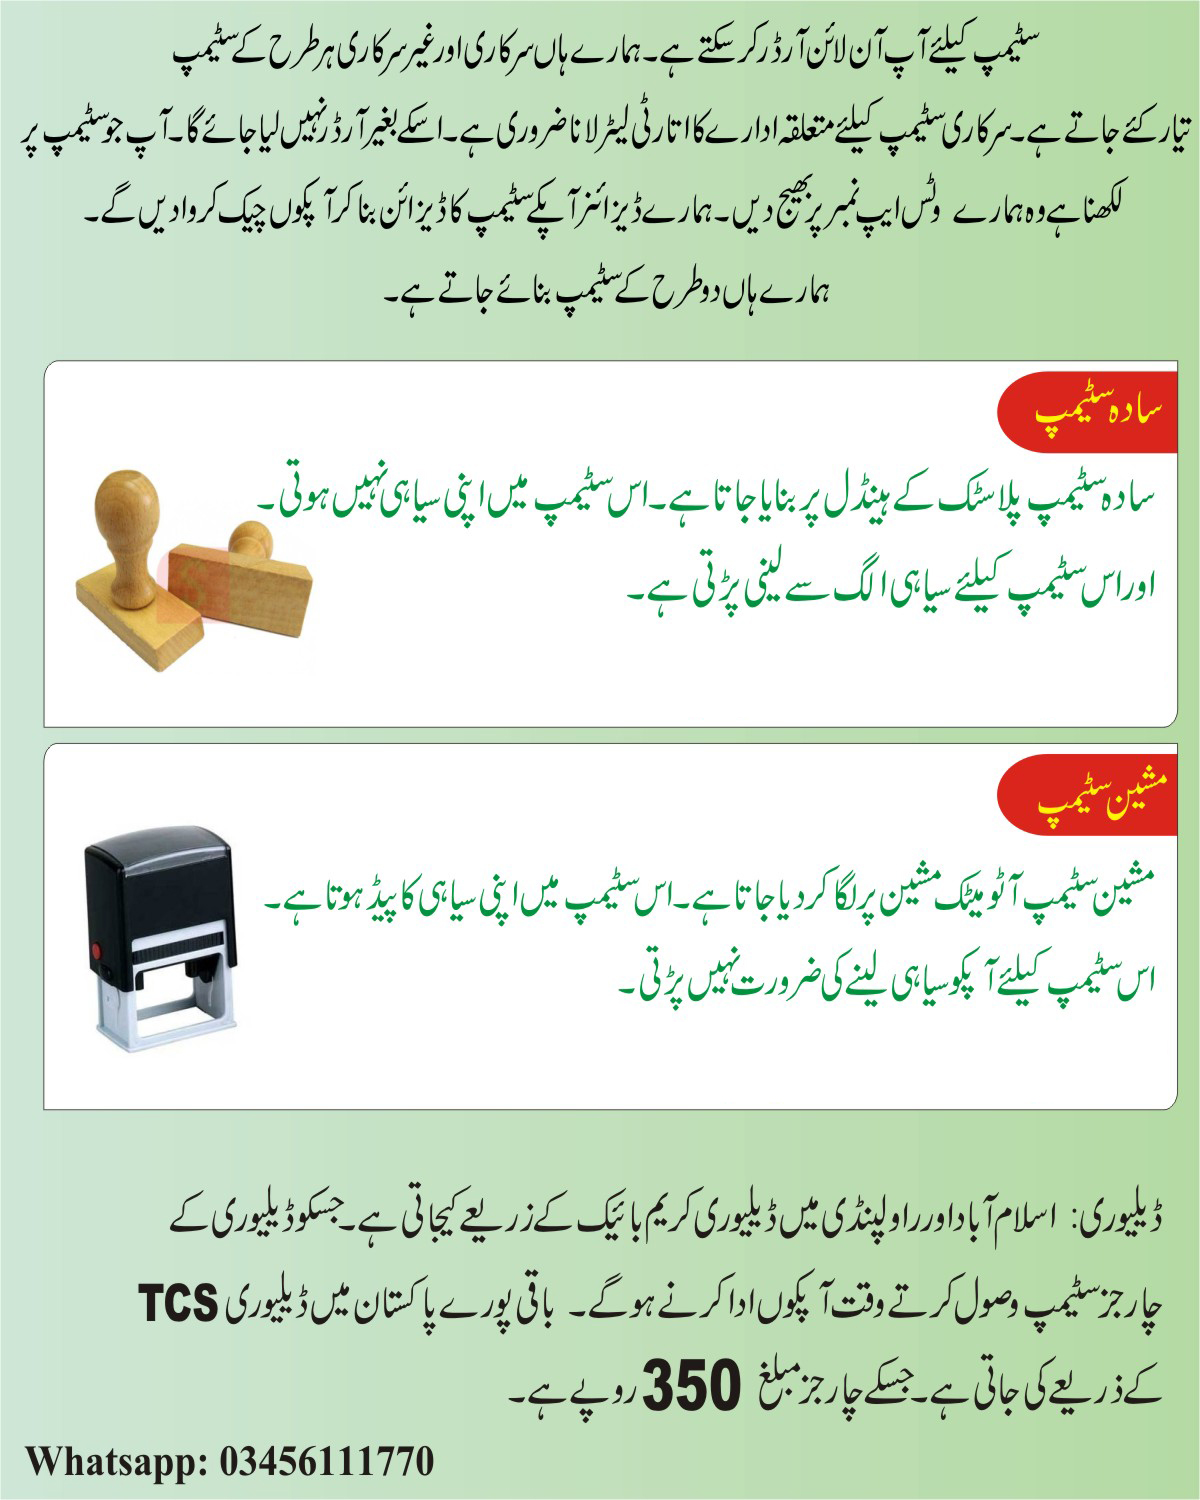 Rubber Stamp Makers Islamabad Pakistan